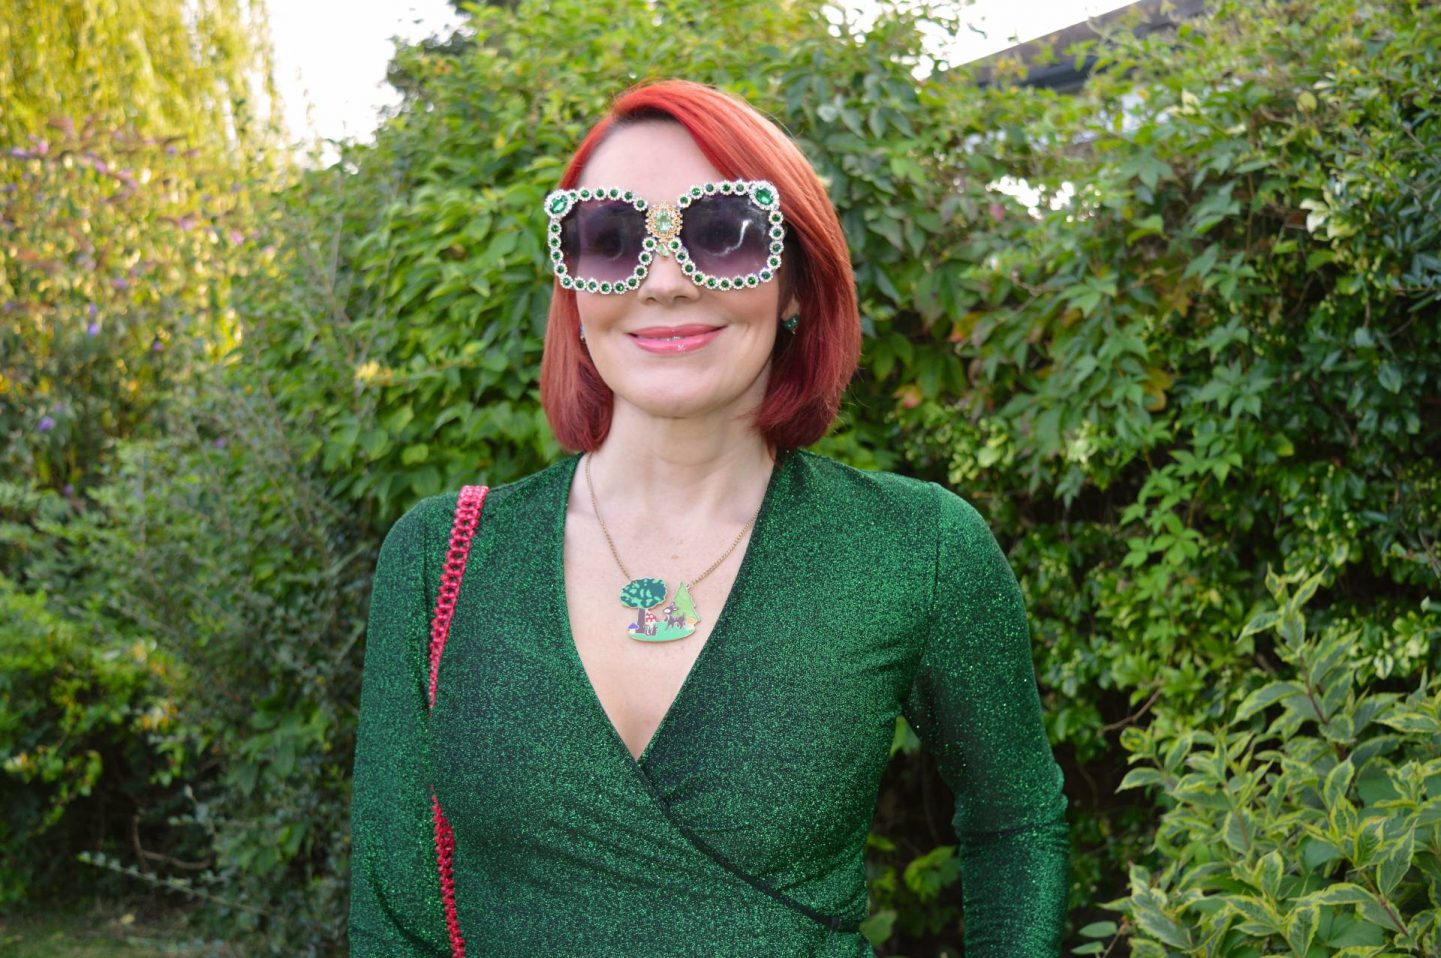 Green Sparkles and Bling + Style With a Smile Link Up, Kitri green lurex wrap top, Hollywood Vintage sunglasses